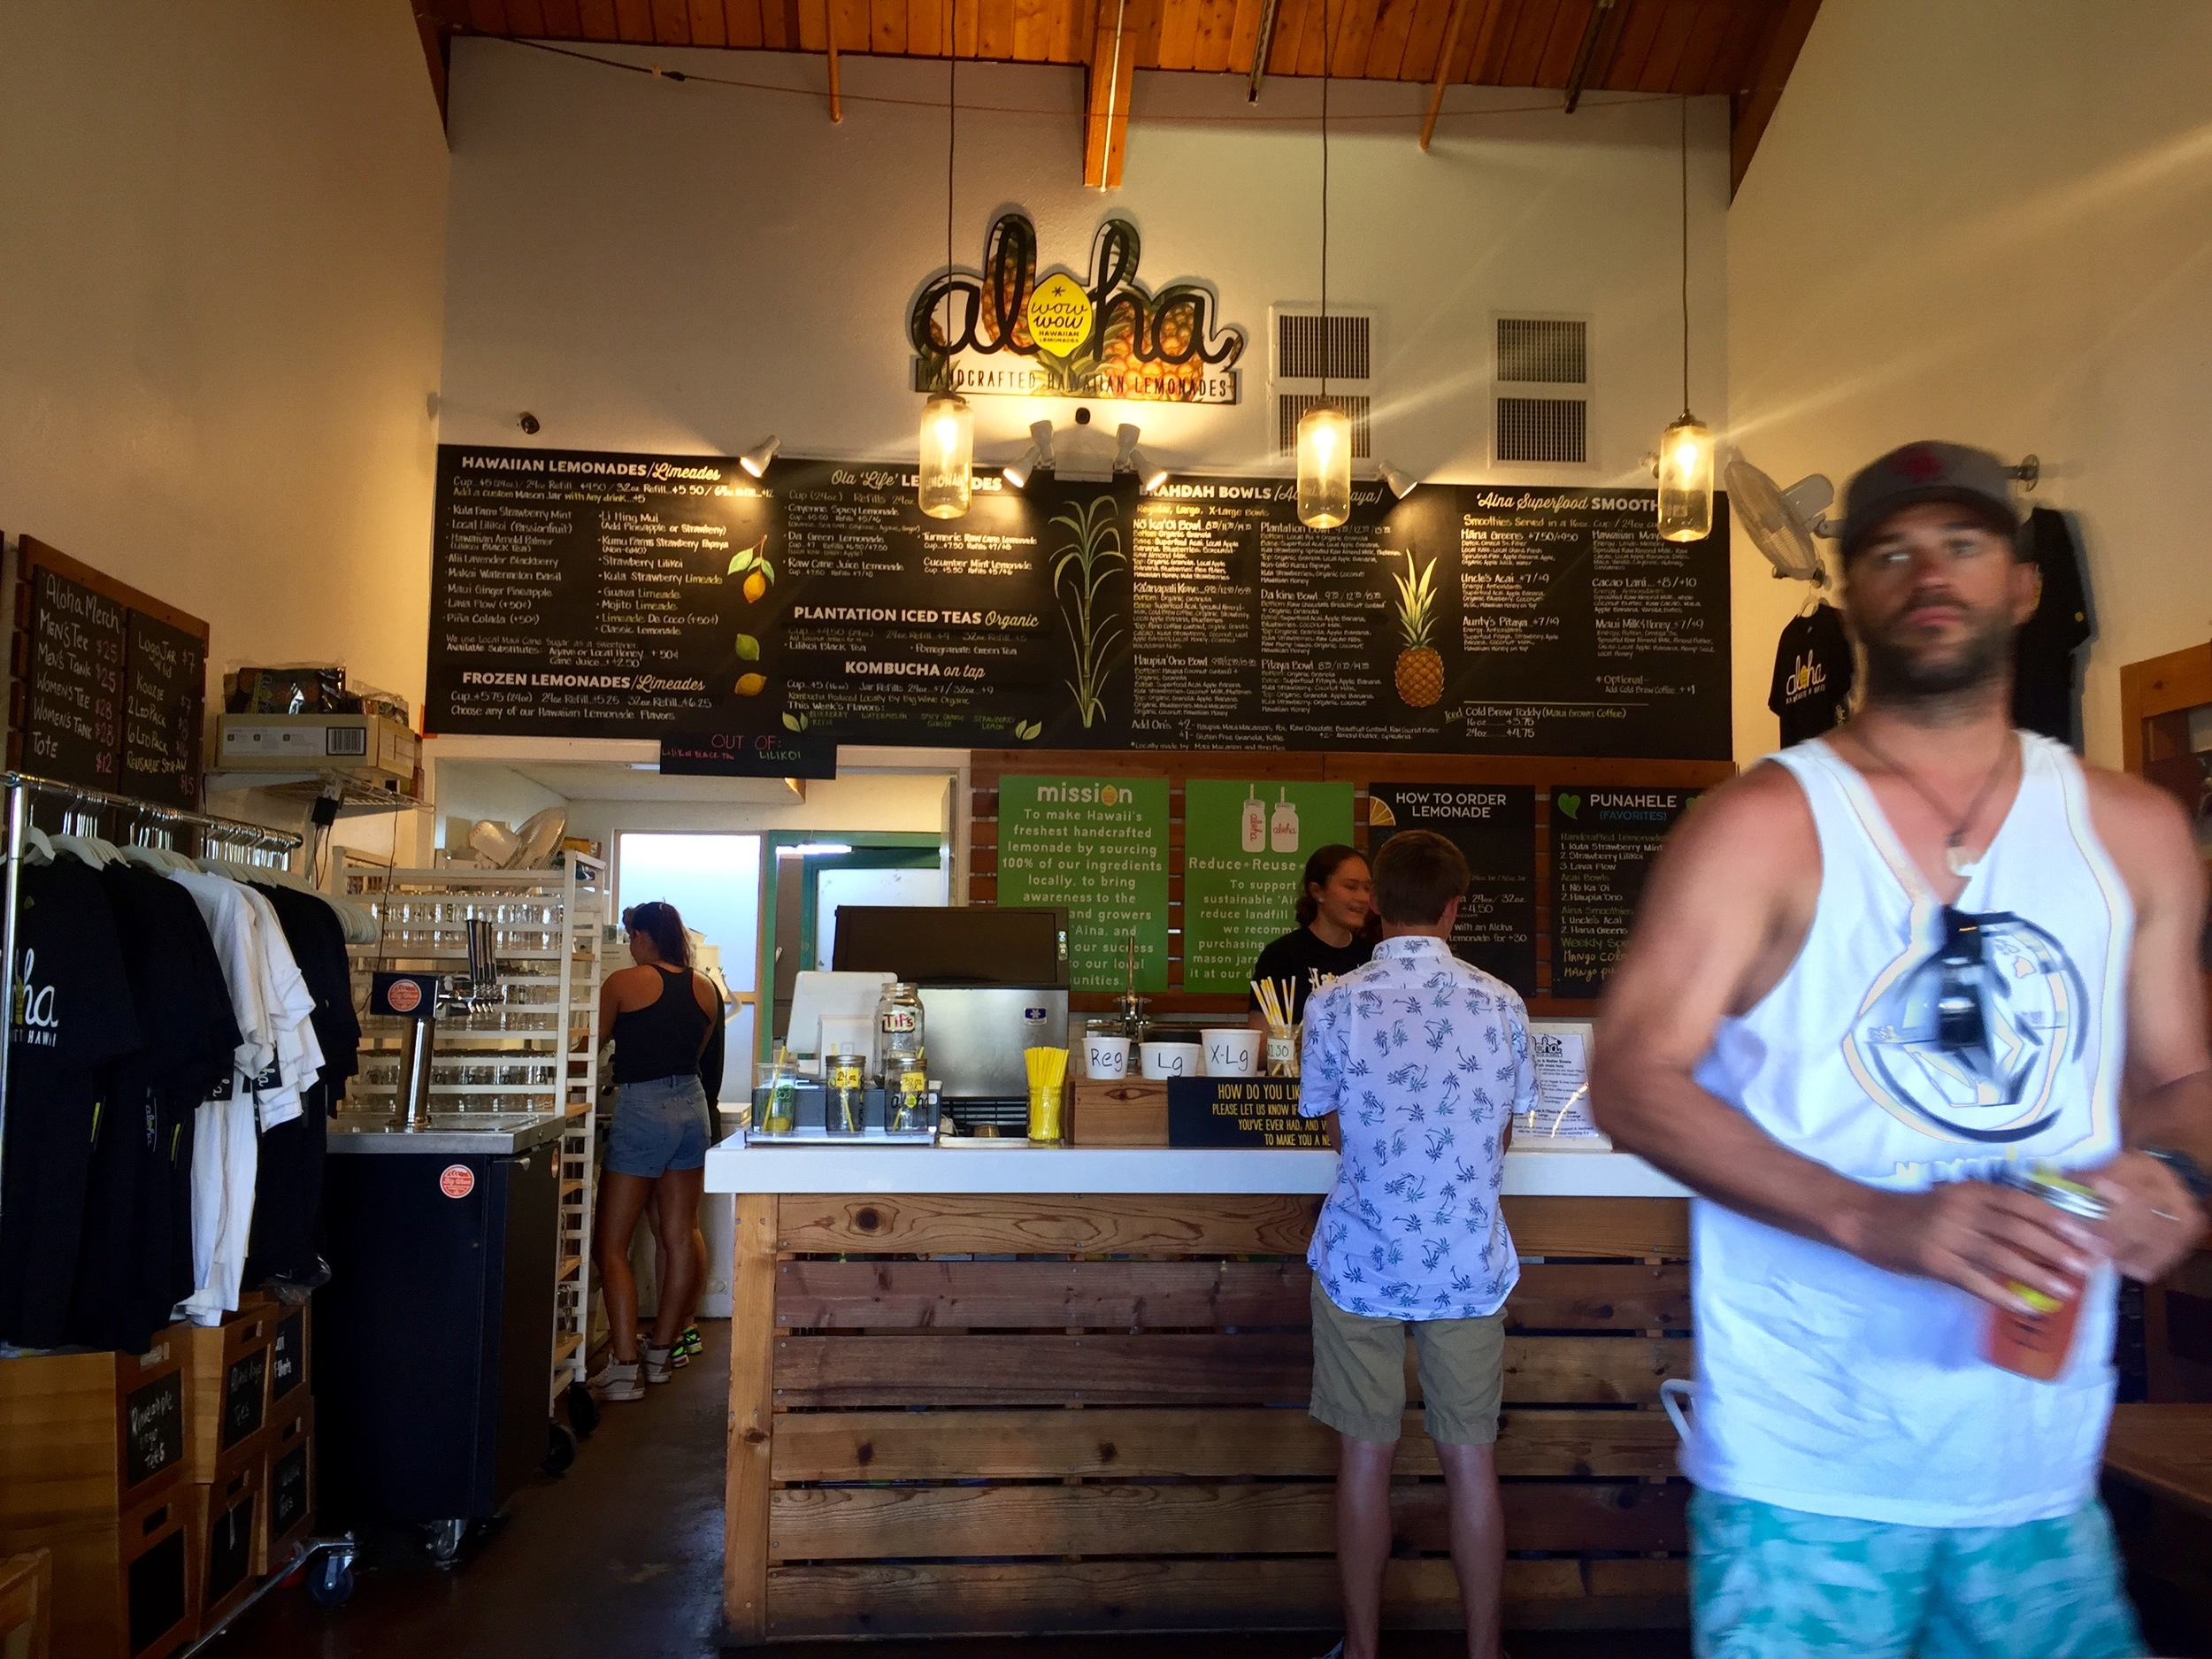 Inside their Kihei location on Maui